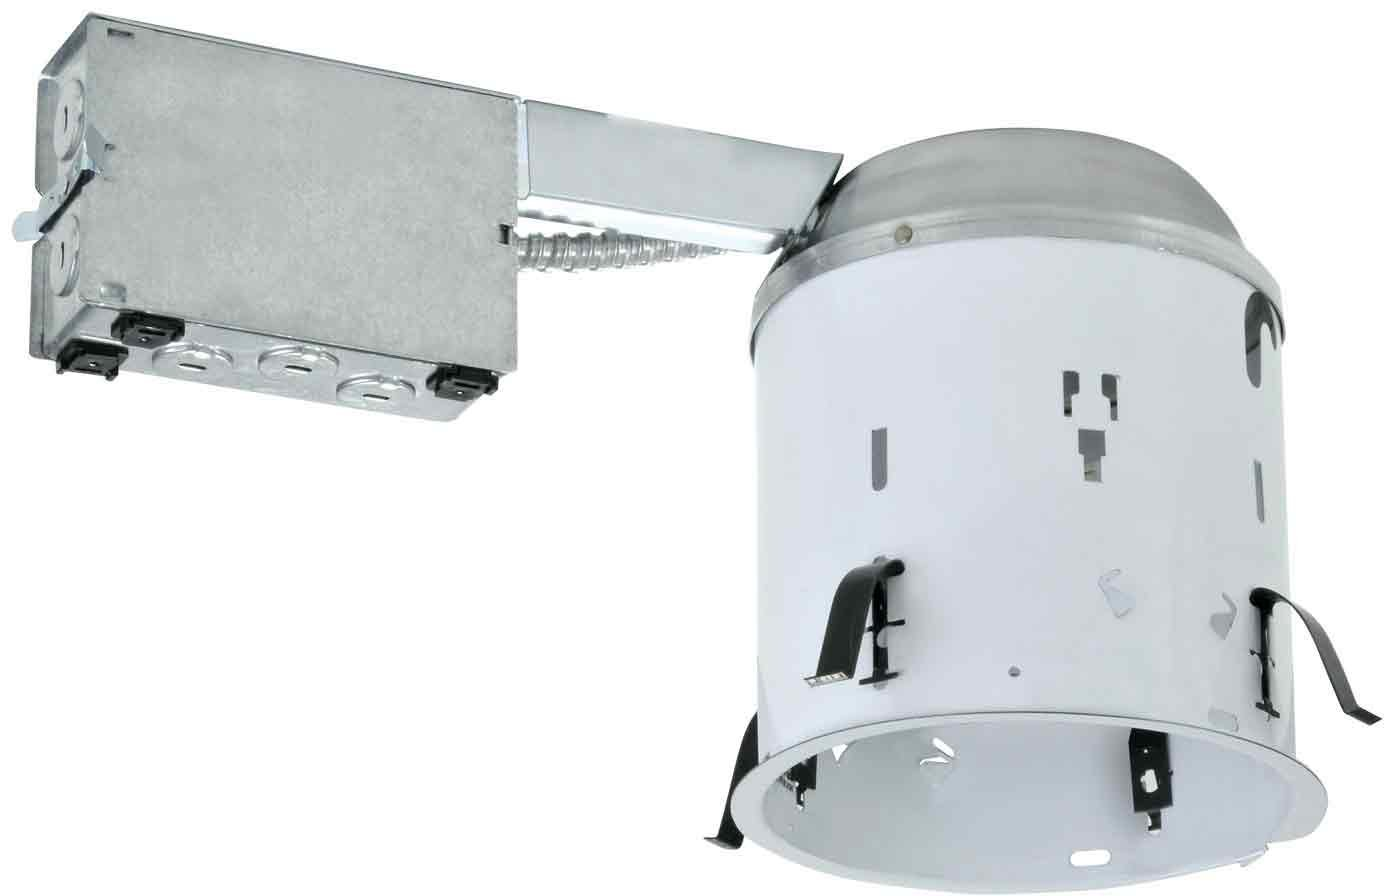 Halo Recessed H750RINTD010 6 Inch Non Ic LED Remodel International Housing  For ML7 600, 900 And 1200 Series LED Modules   Recessed Light Fixture  Housings ...